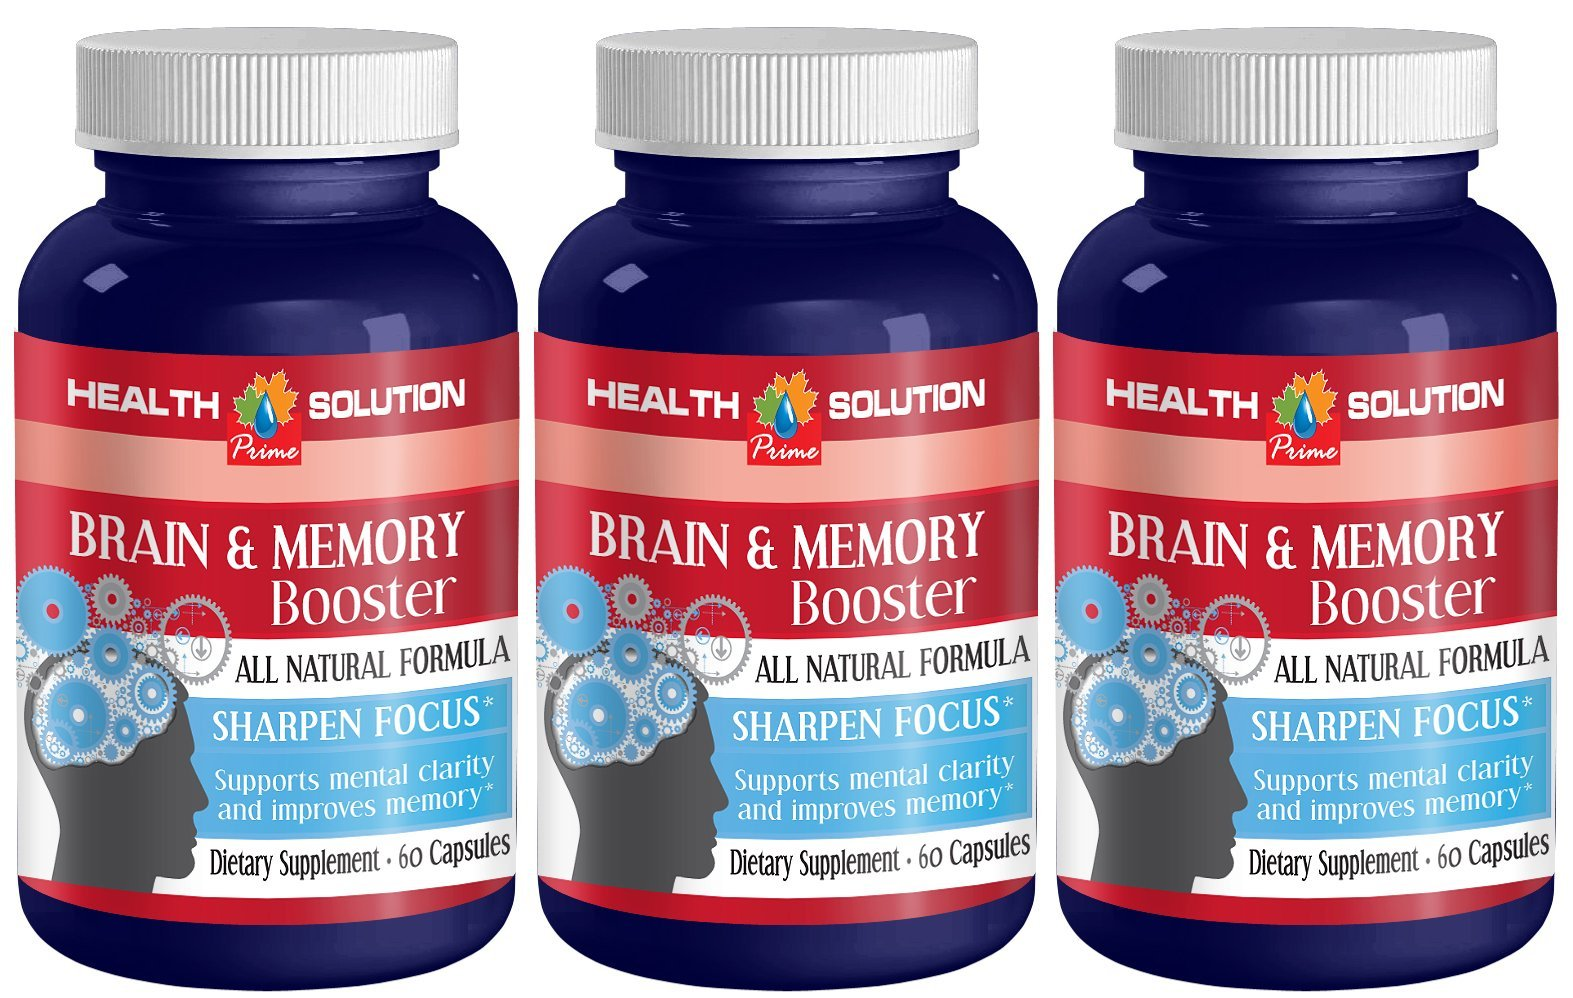 St john wort extract - BRAIN AND MEMORY BOOSTER - support cognitive performance (3 bottles)